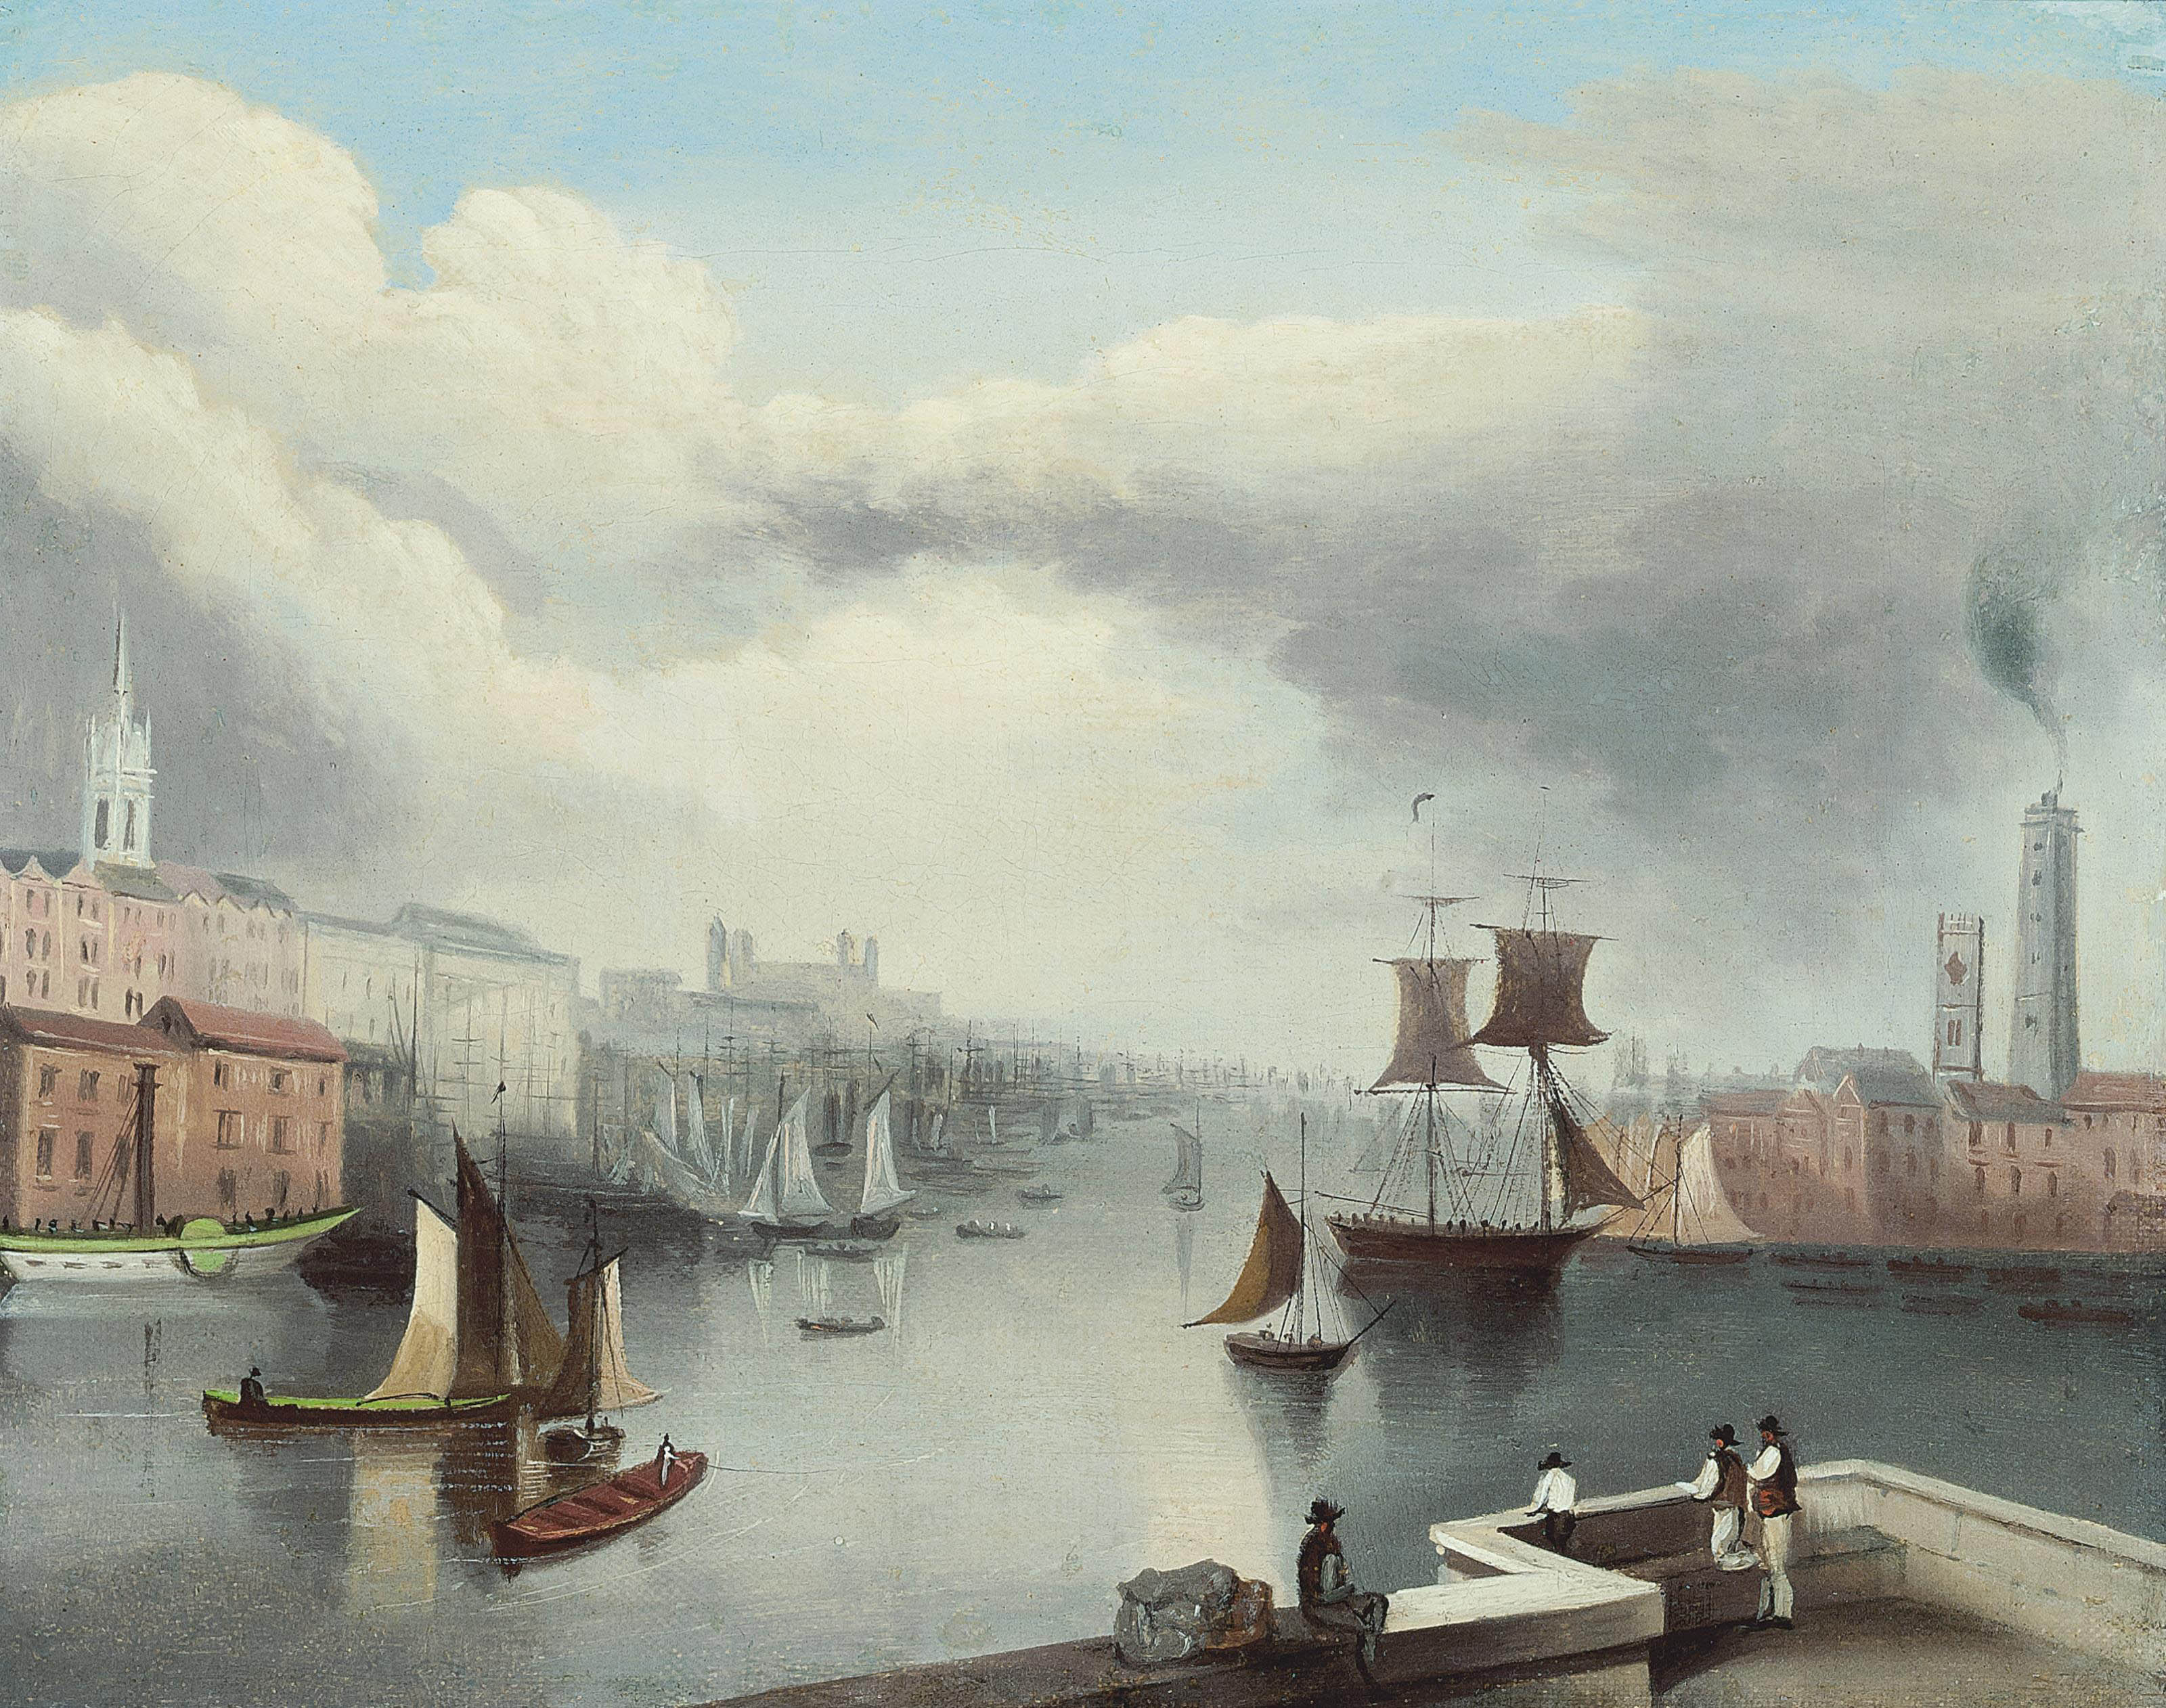 Attributed to Daniel Turner (1